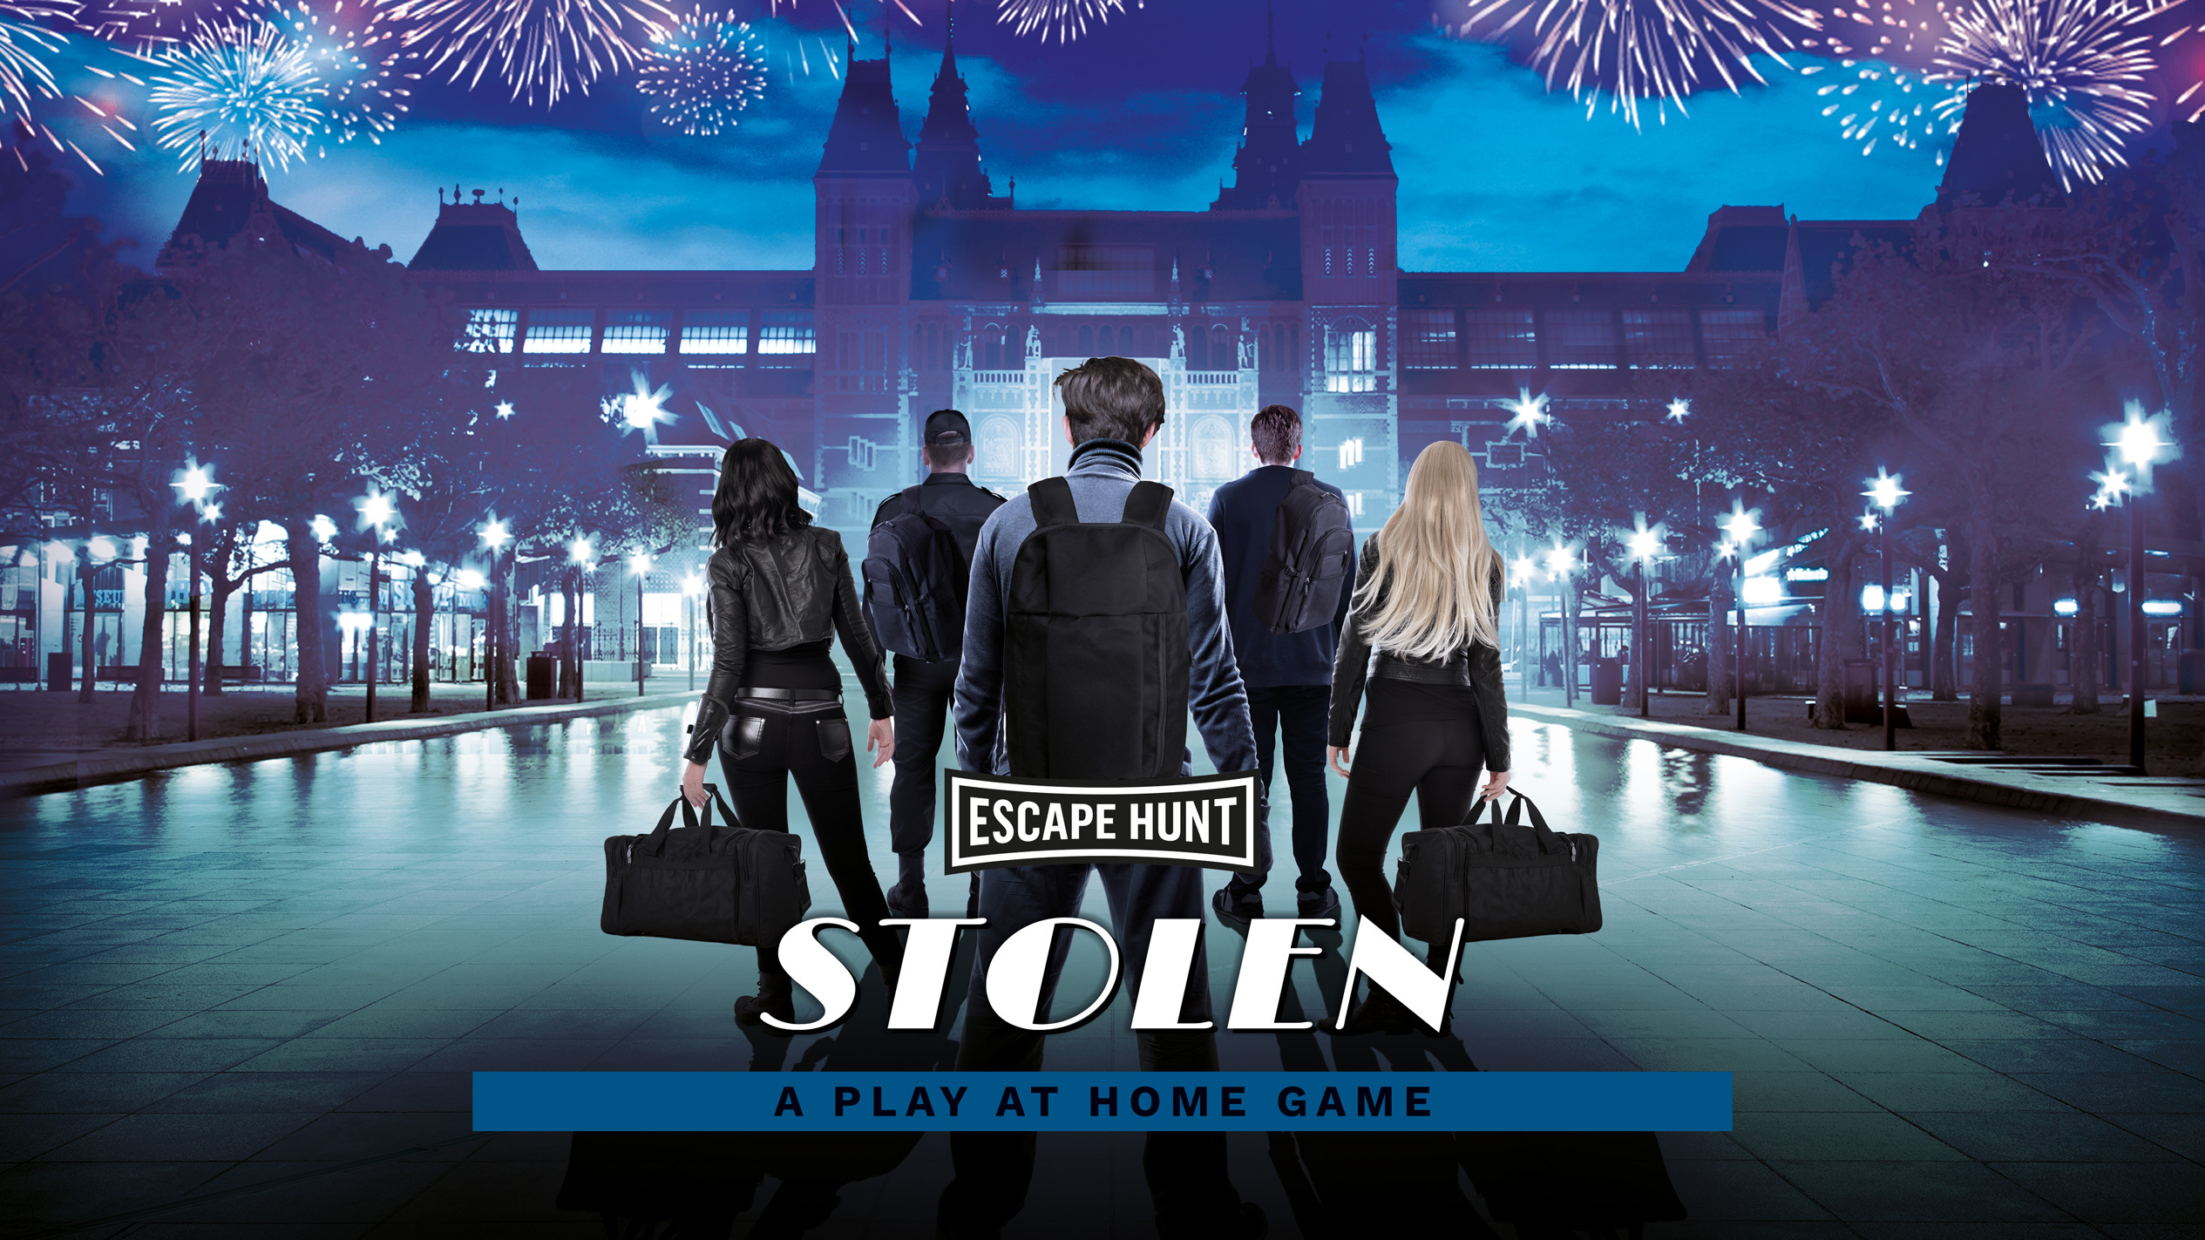 STOLEN – NEW PLAY AT HOME ESCAPE ROOM GAME!